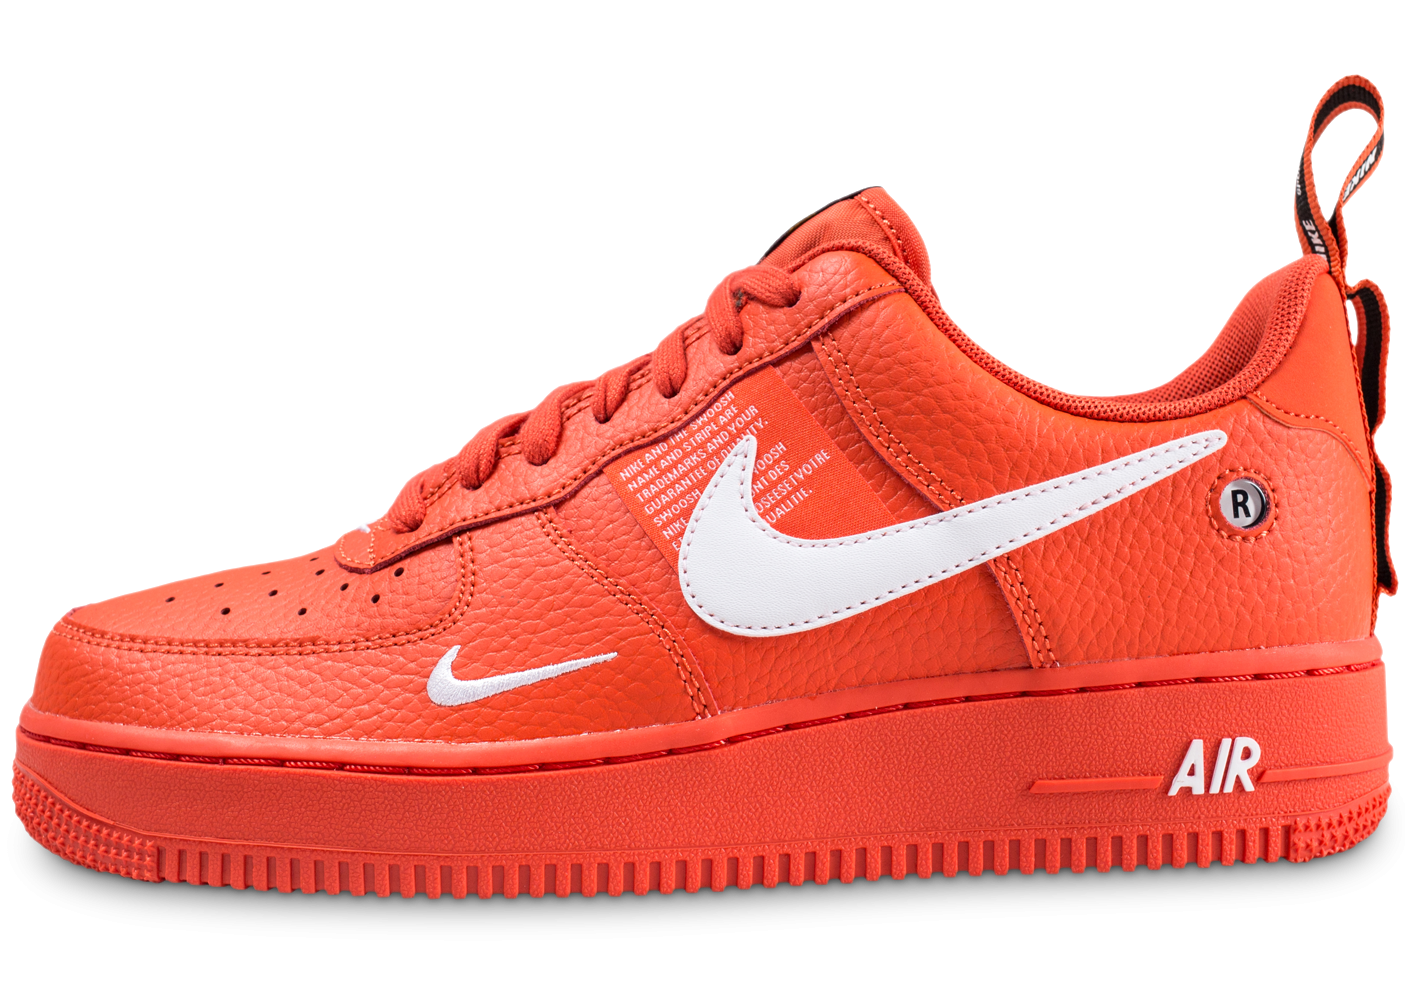 Nike Air Force 1 '07 LV8 Utility orange